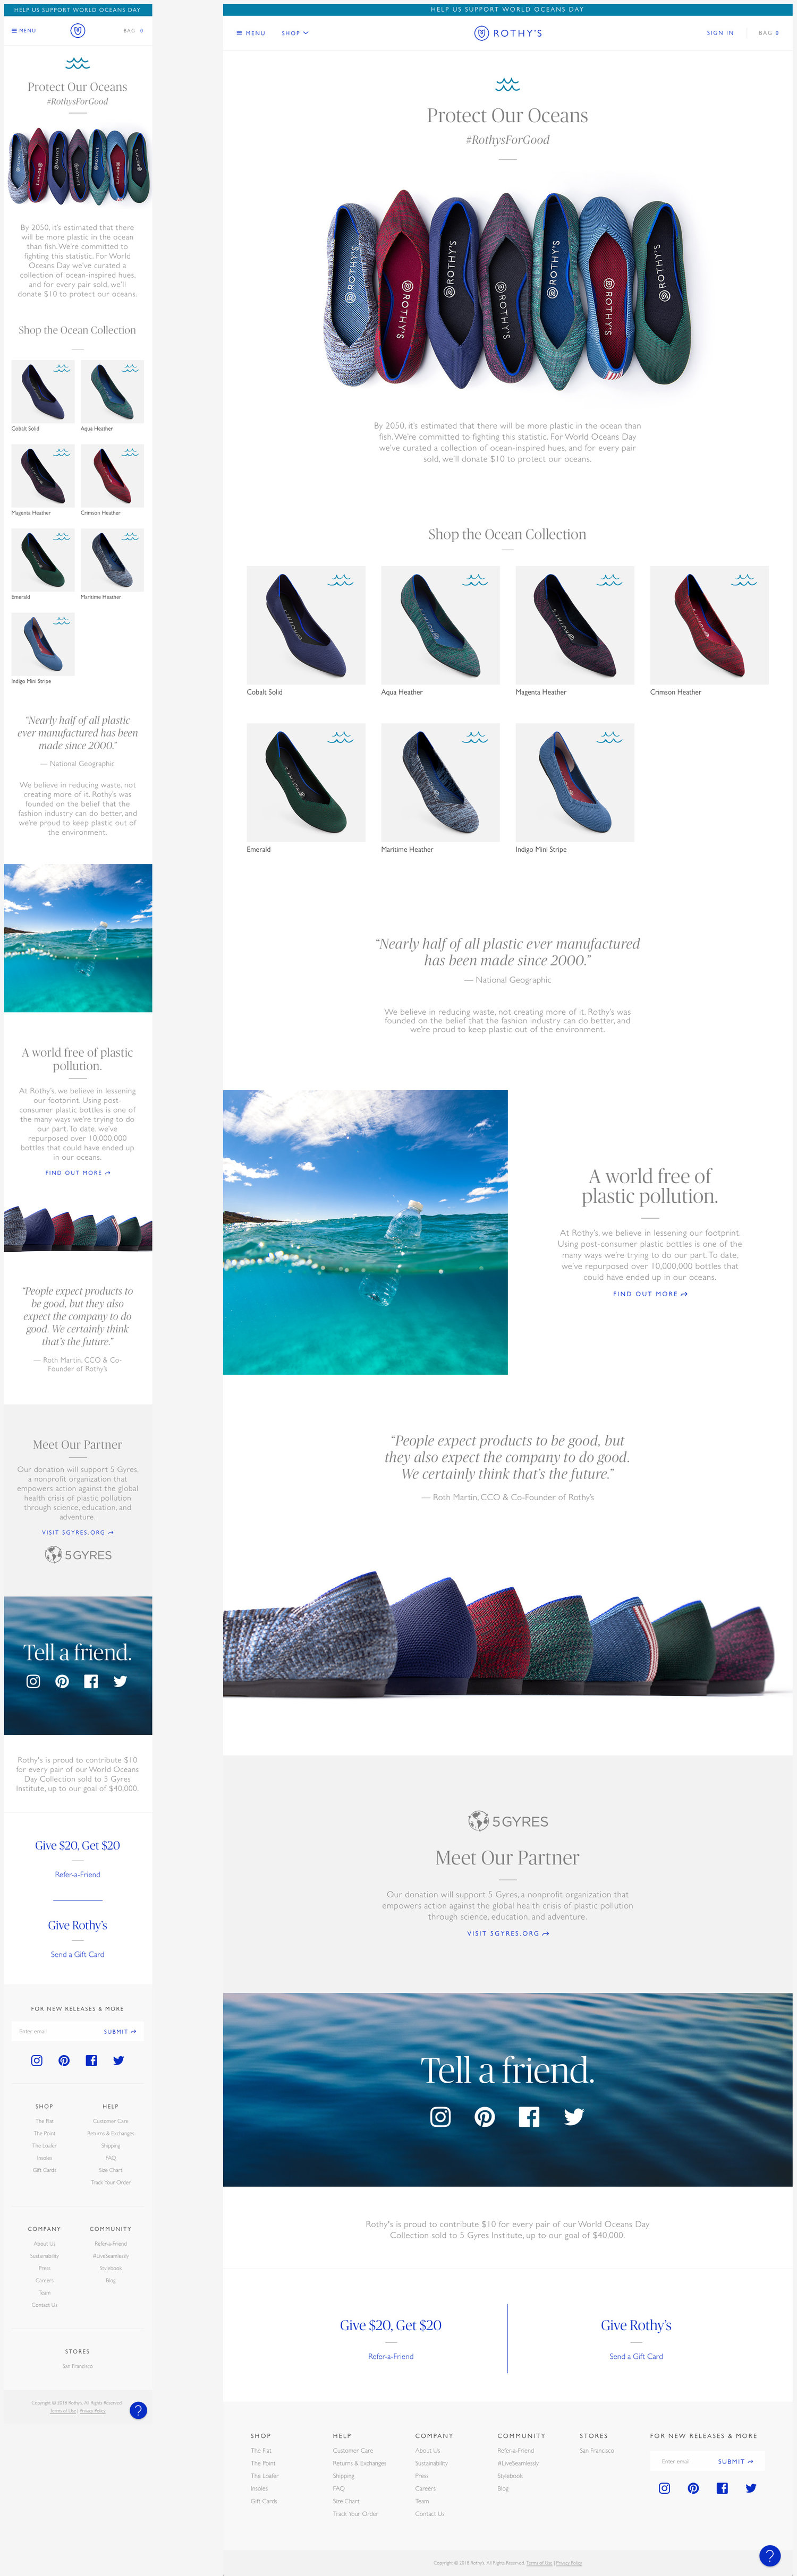 Rothy's World Oceans Day Landing Page